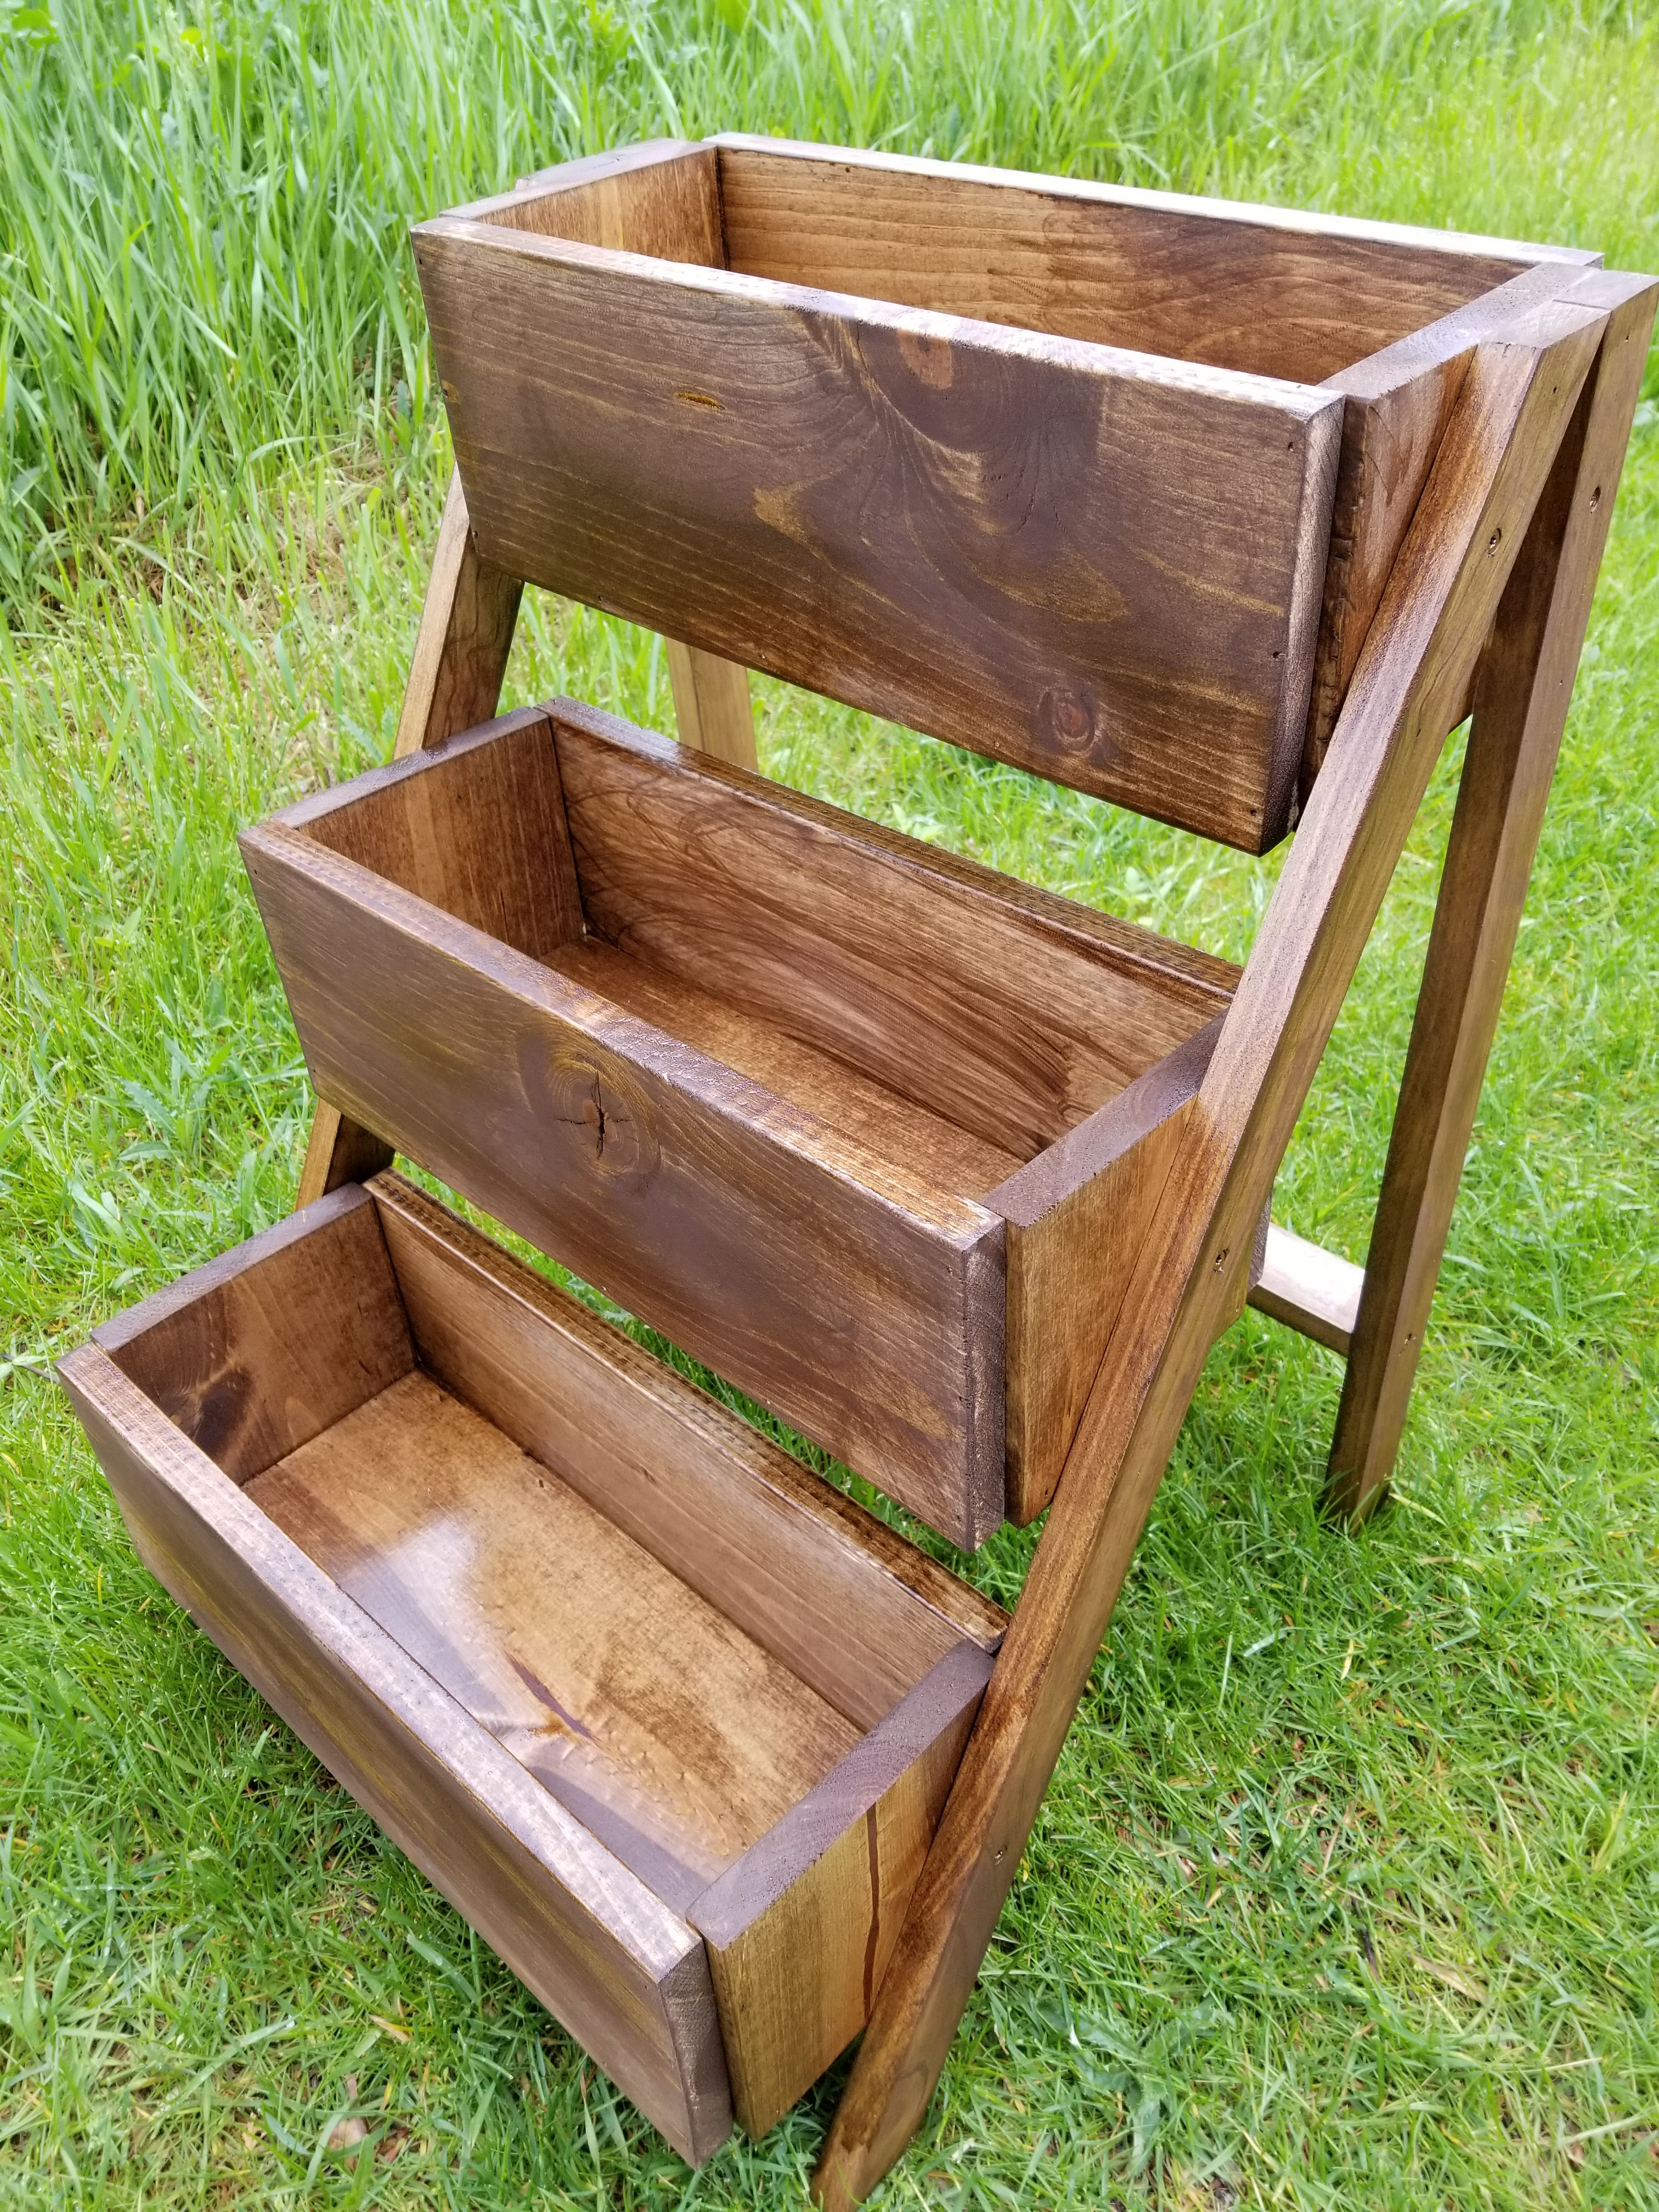 Ana White 3 Tier Planter DIY Projects (With images